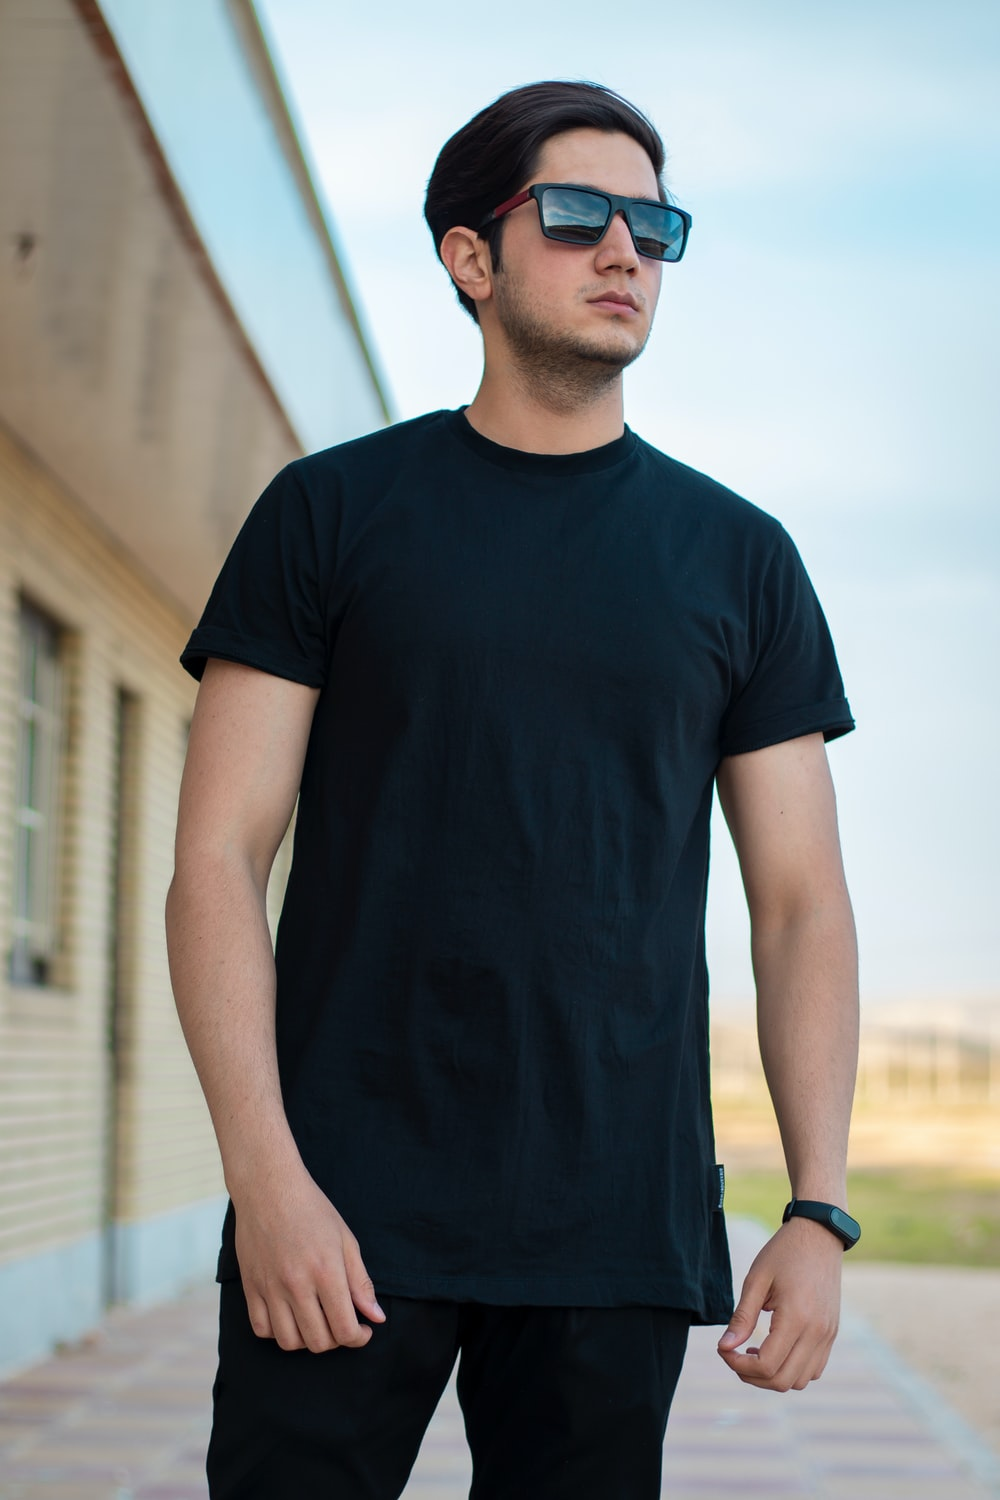 man in black crew neck t-shirt standing during daytime